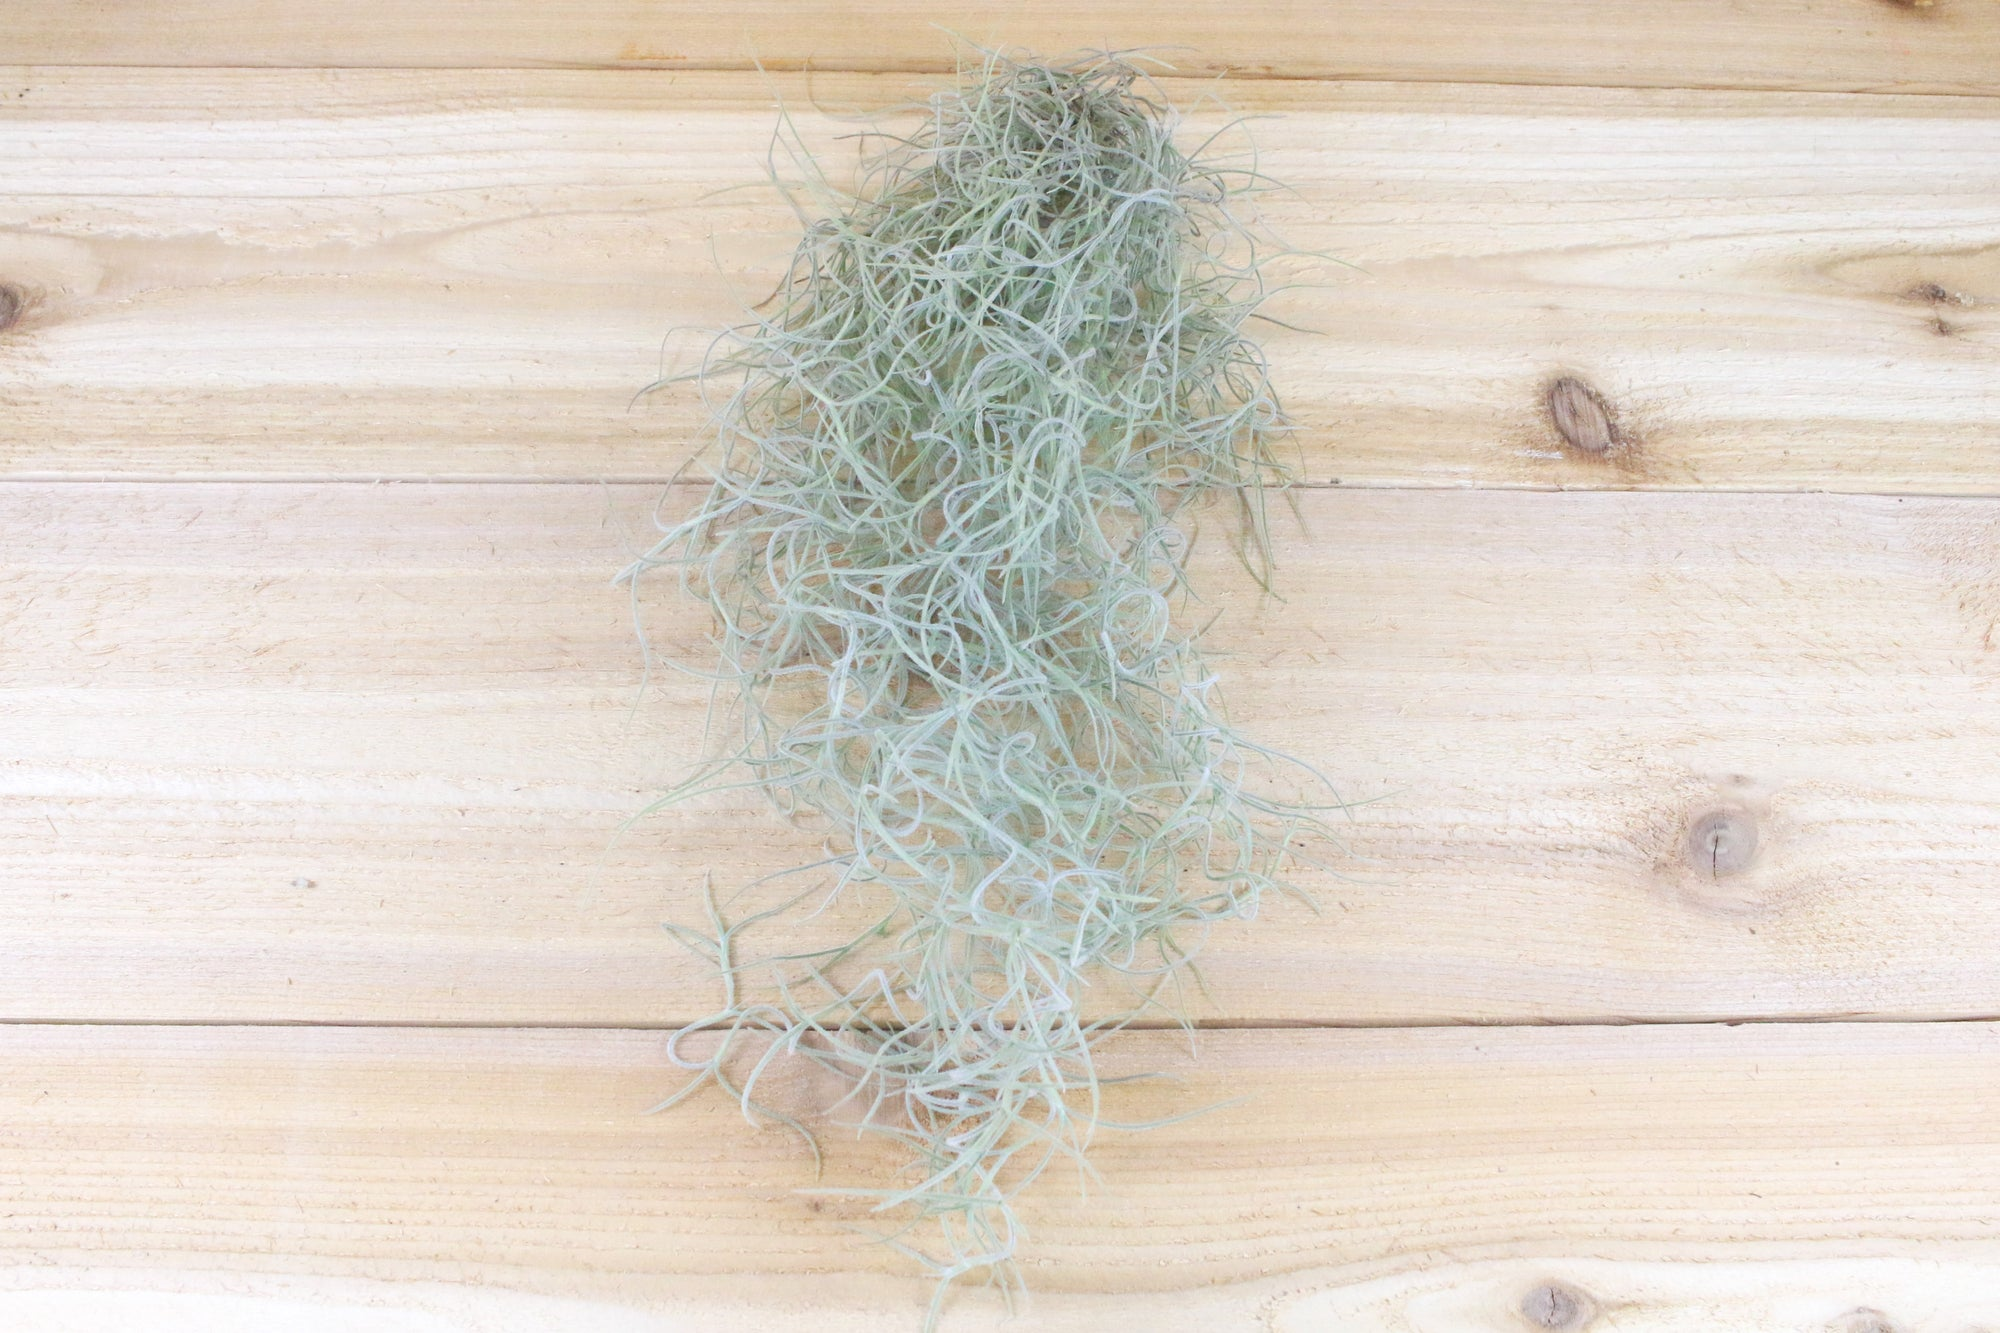 Wholesale: Tillandsia Usneoides- Spanish Moss Strands With Wire Hanger [Min Order 12] from AirPlantShop.com